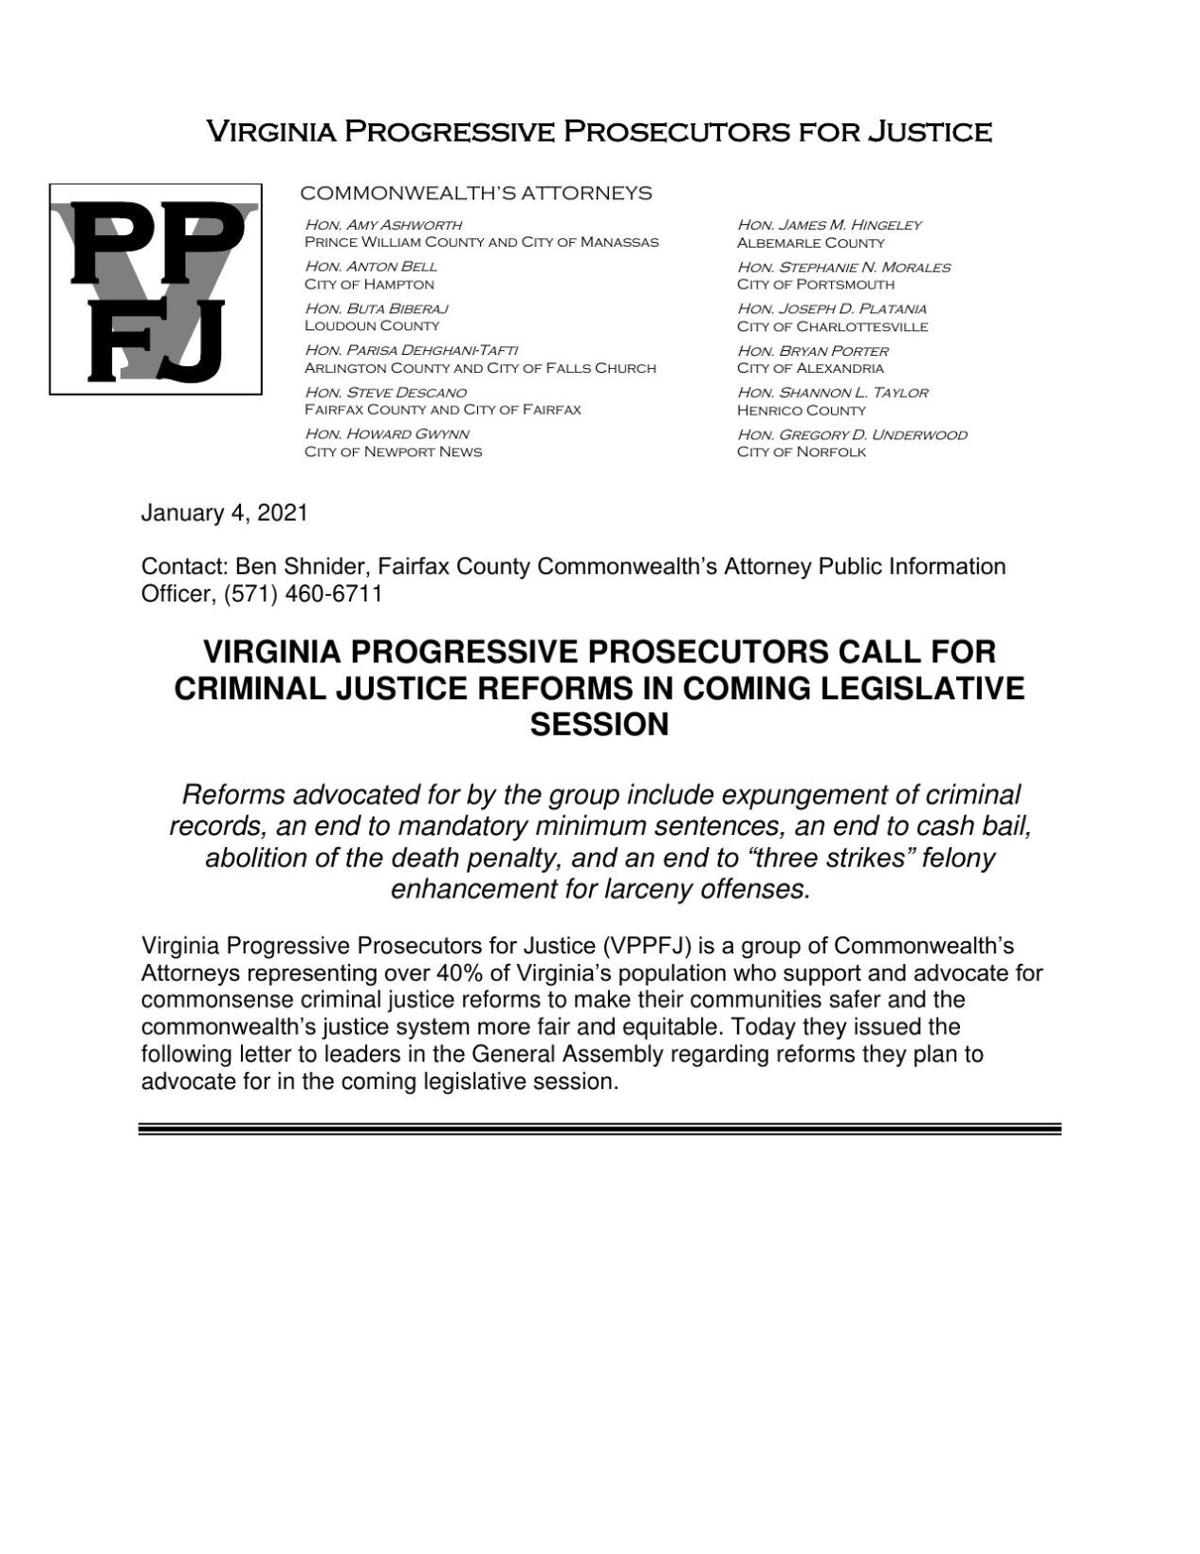 Virginia Progressive Prosecutors for Justice letter advocating to abolish the death penalty among other reforms